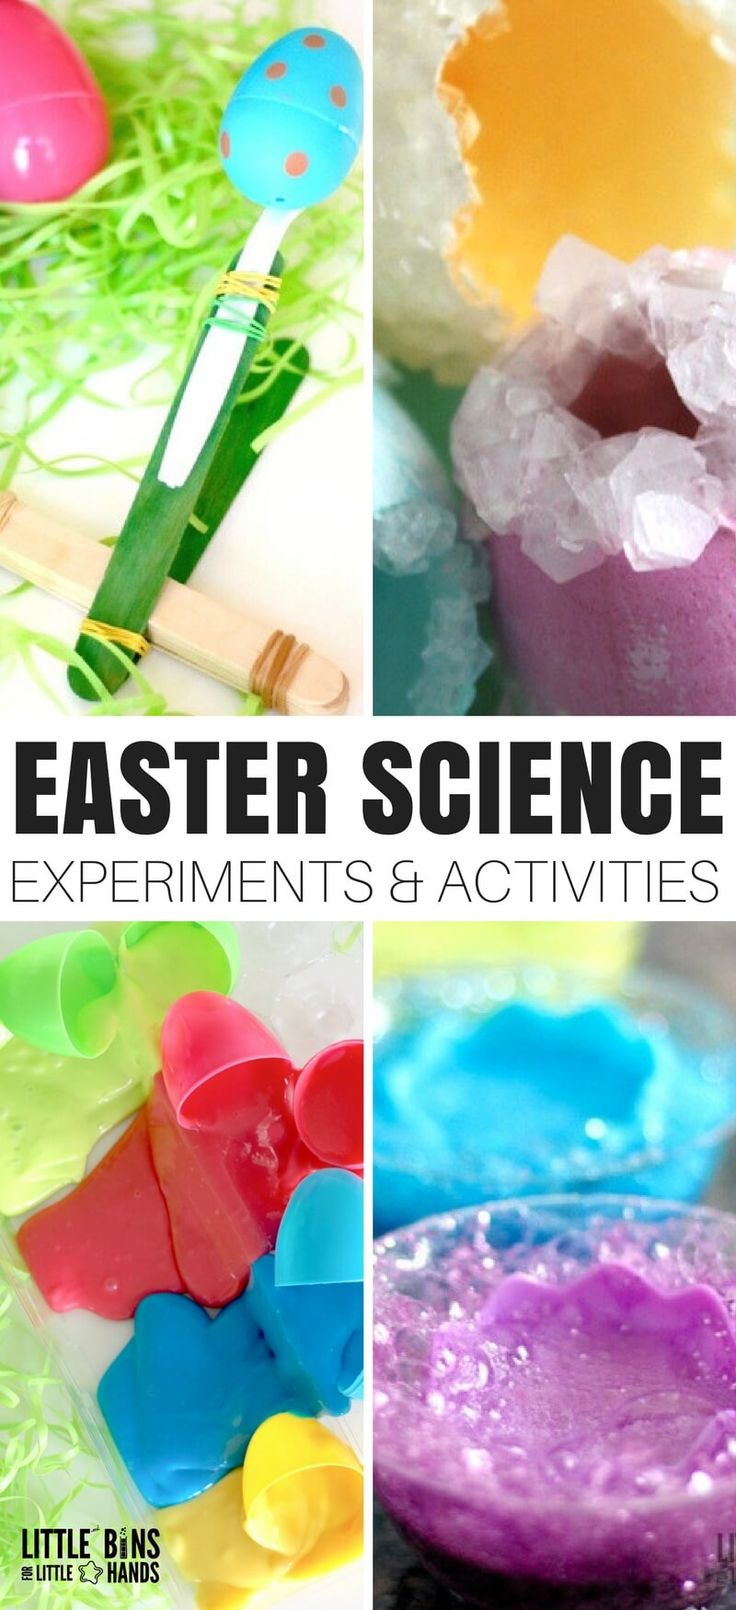 We have the best, most fun, and super easy to set up Easter science activities for your kids this Spring! It's amazing what you can do with both real and plastic eggs. We love doing transforming our everyday science and STEM with cool holiday themes! Our Easter science experiments are perfect for young kids to enjoy all season long.